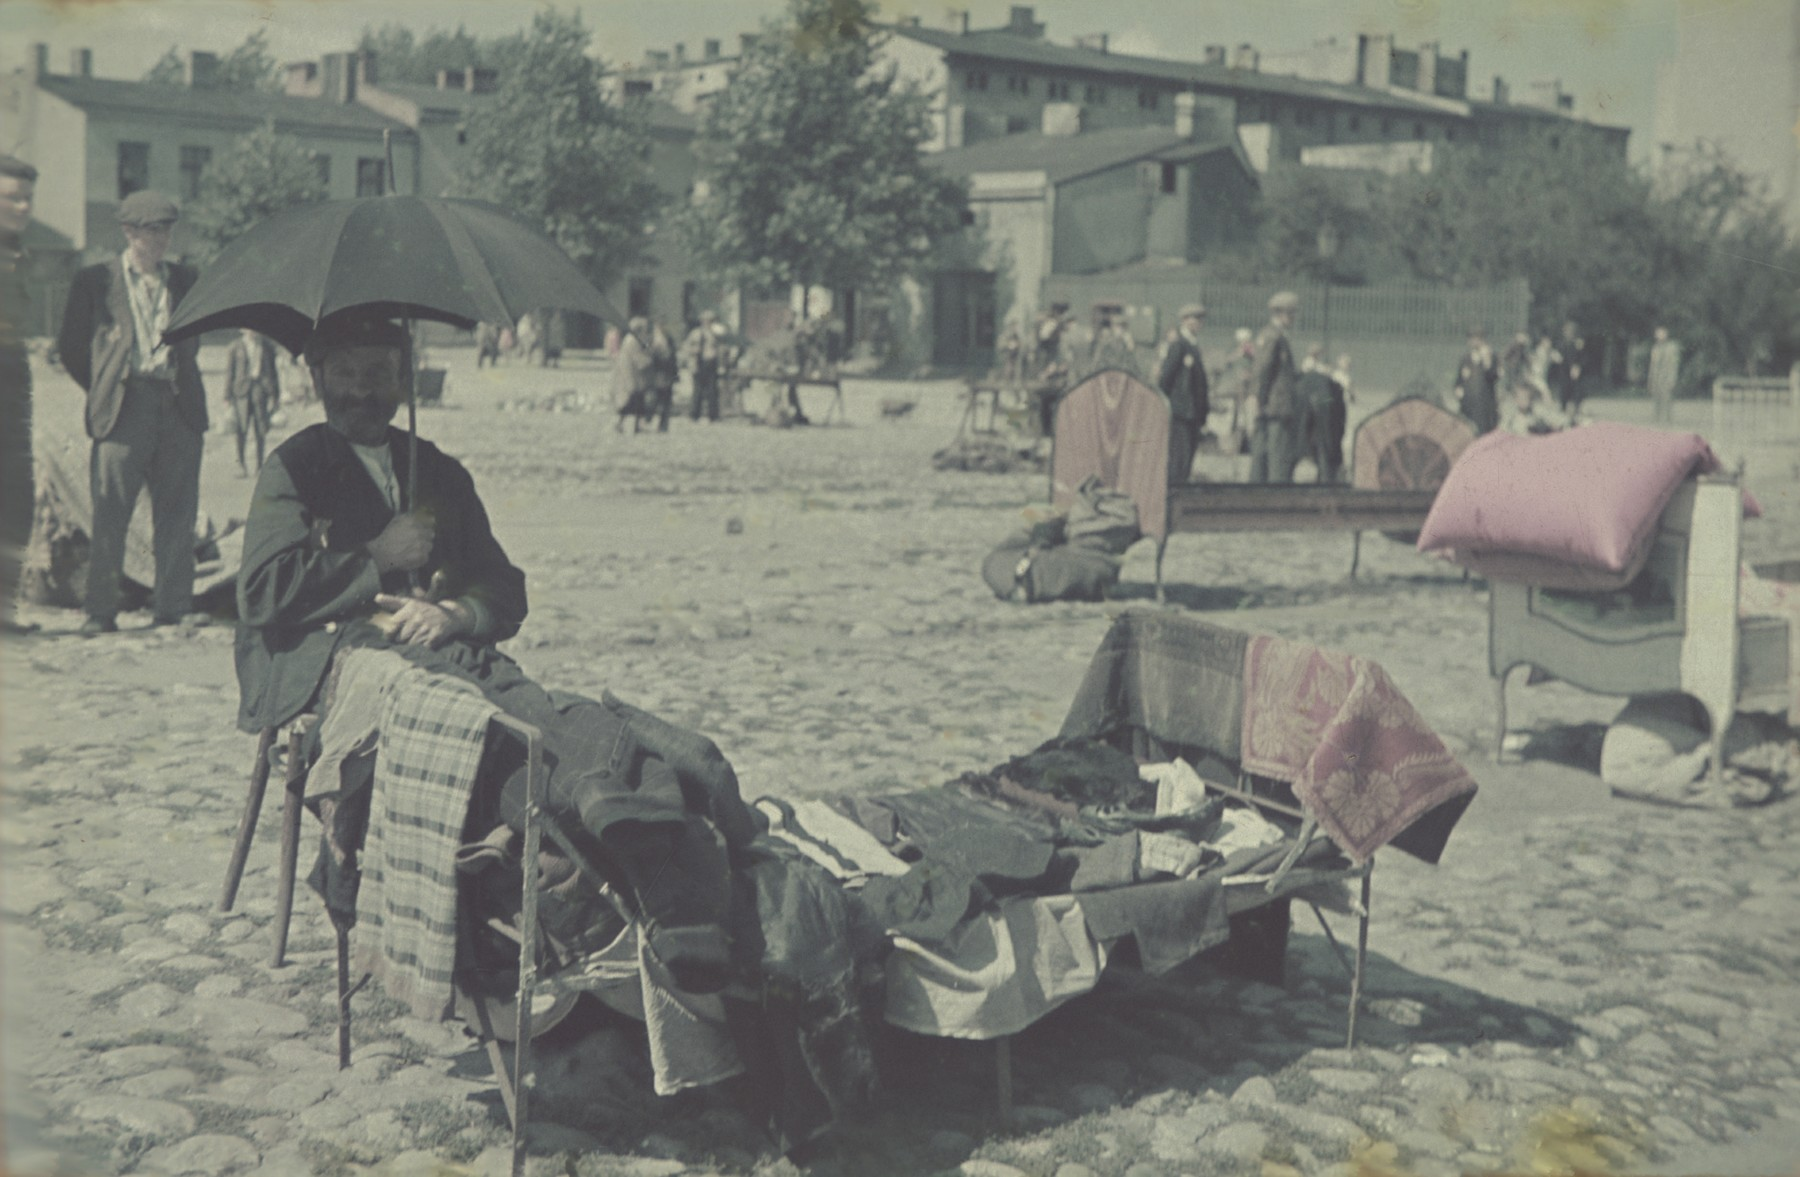 A vendor sits under a shade umbrella in the outdoor market of the Lodz ghetto.